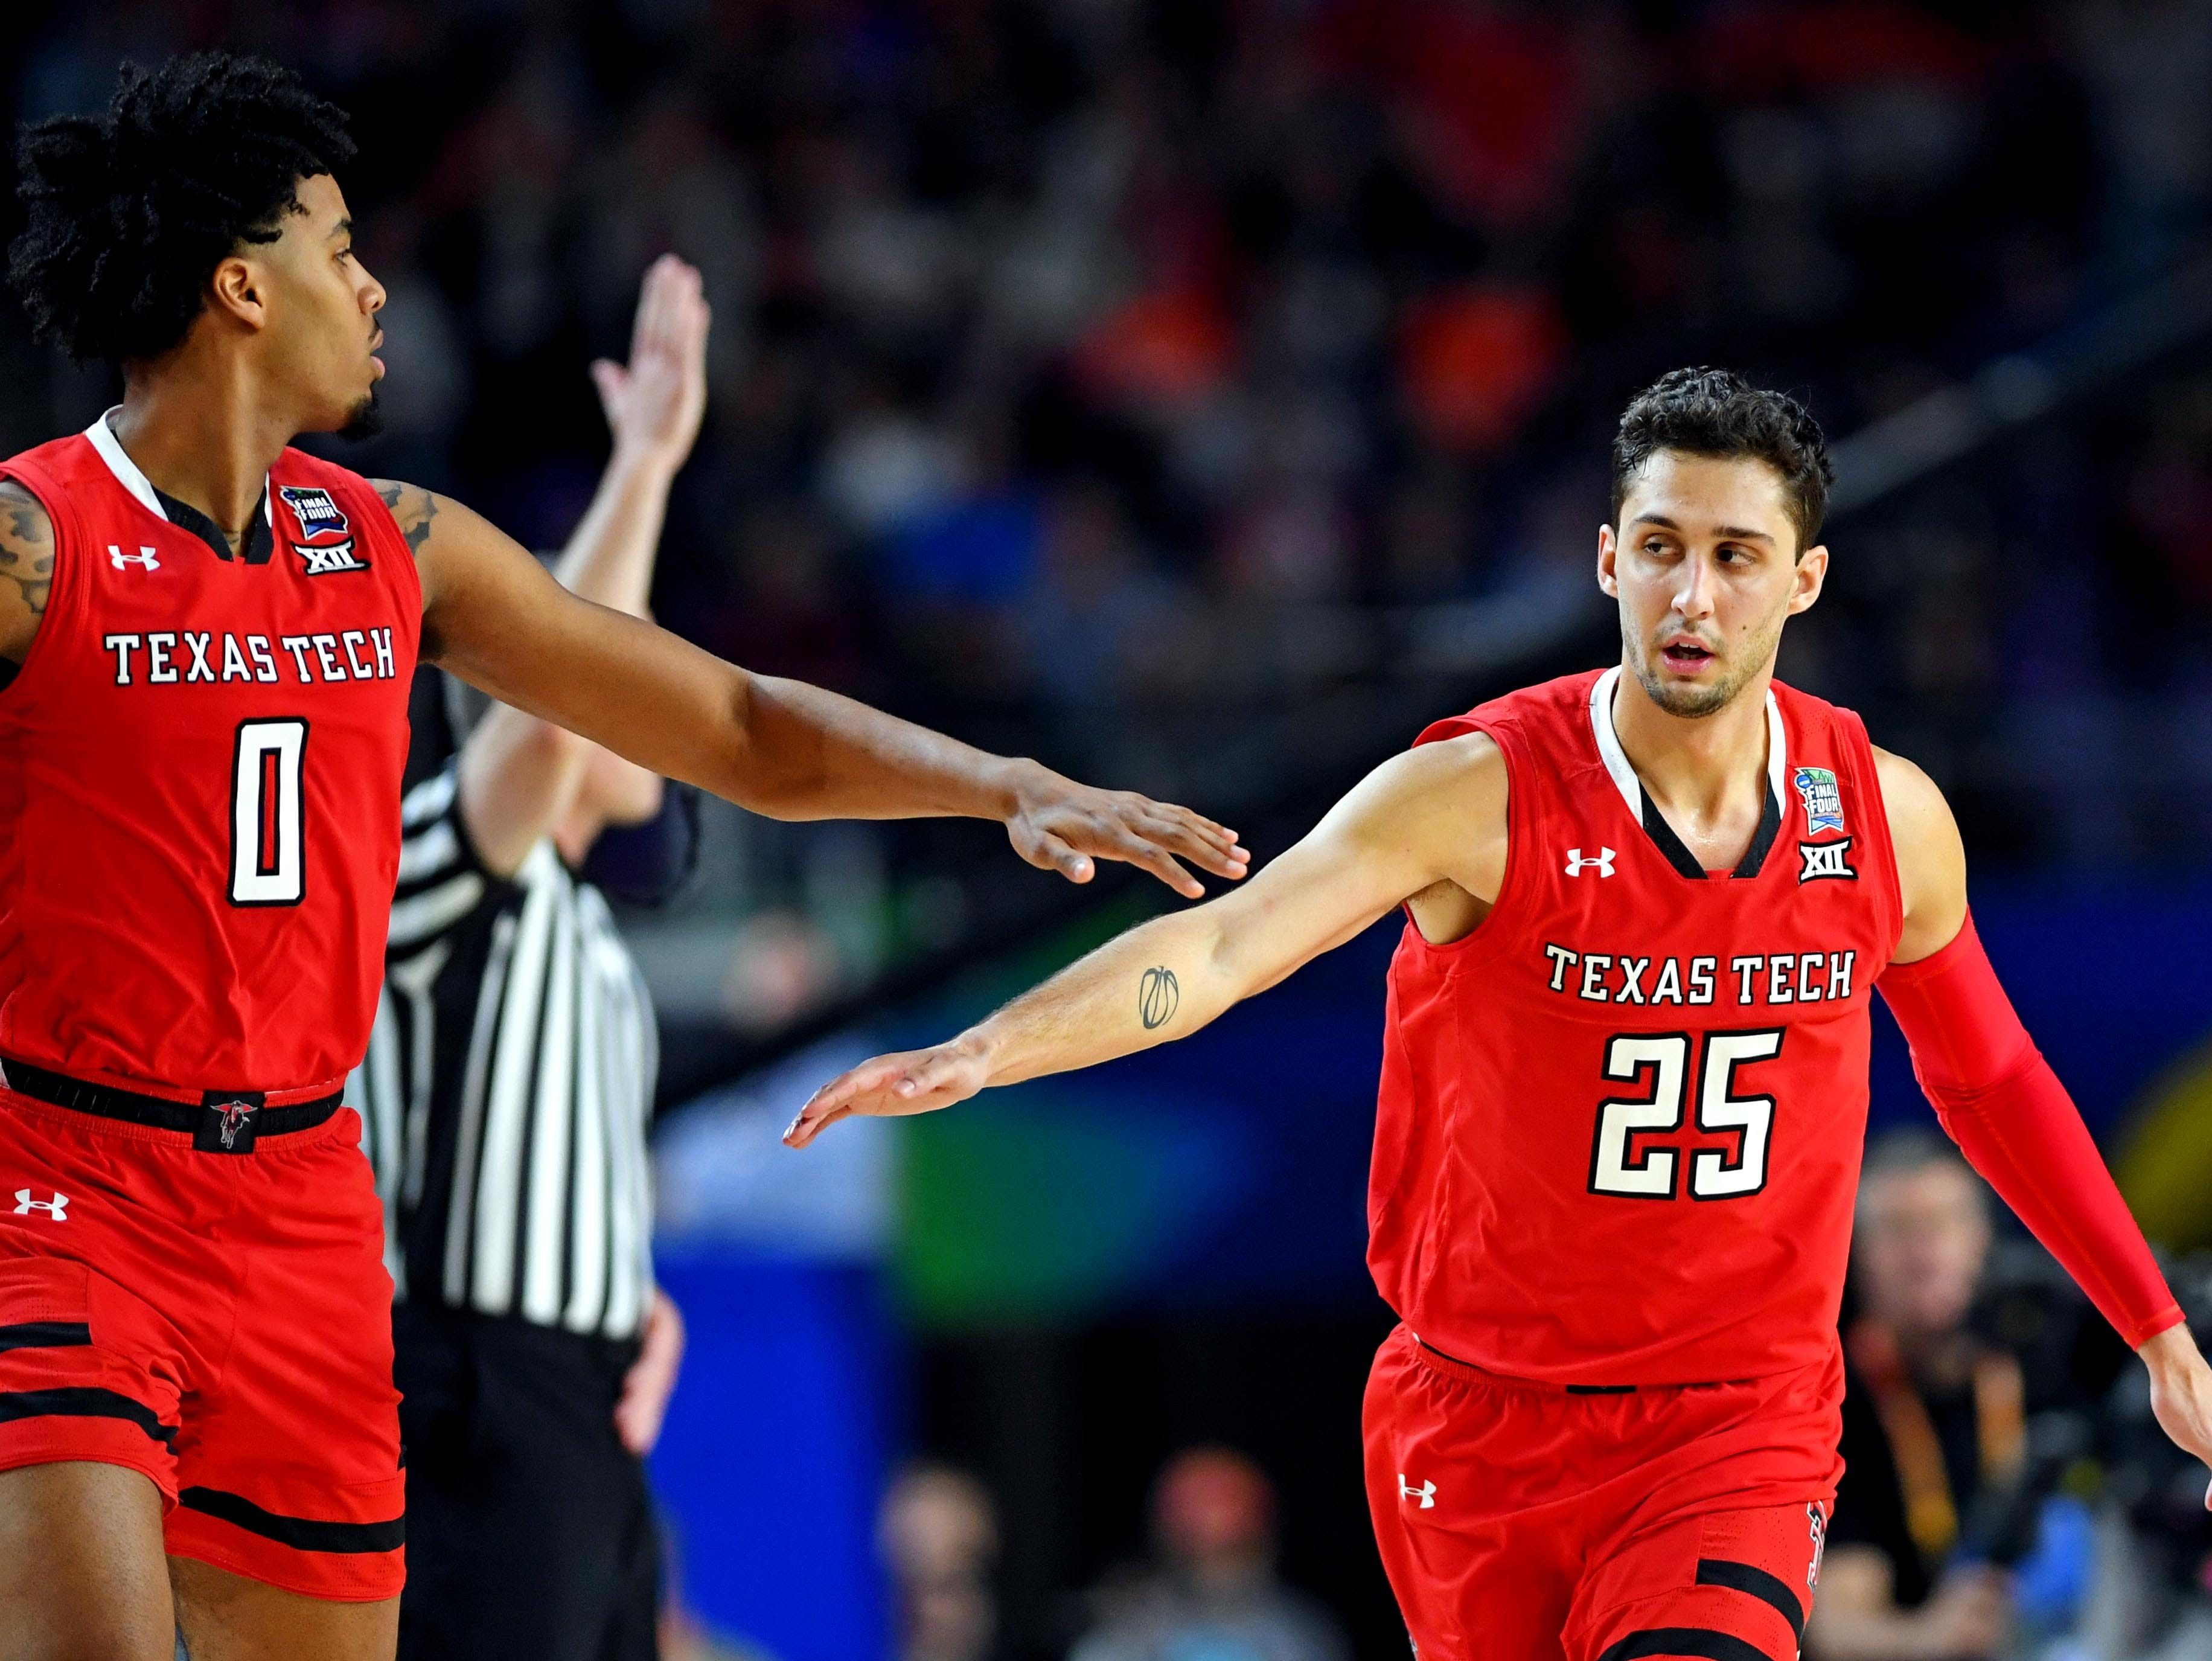 Apr 8, 2019; Minneapolis, MN, USA; Texas Tech Red Raiders guard Davide Moretti (25) and guard Kyler Edwards (0) celebrates during the first half against the Virginia Cavaliers in the championship game of the 2019 men's Final Four at US Bank Stadium. Mandatory Credit: Bob Donnan-USA TODAY Sports